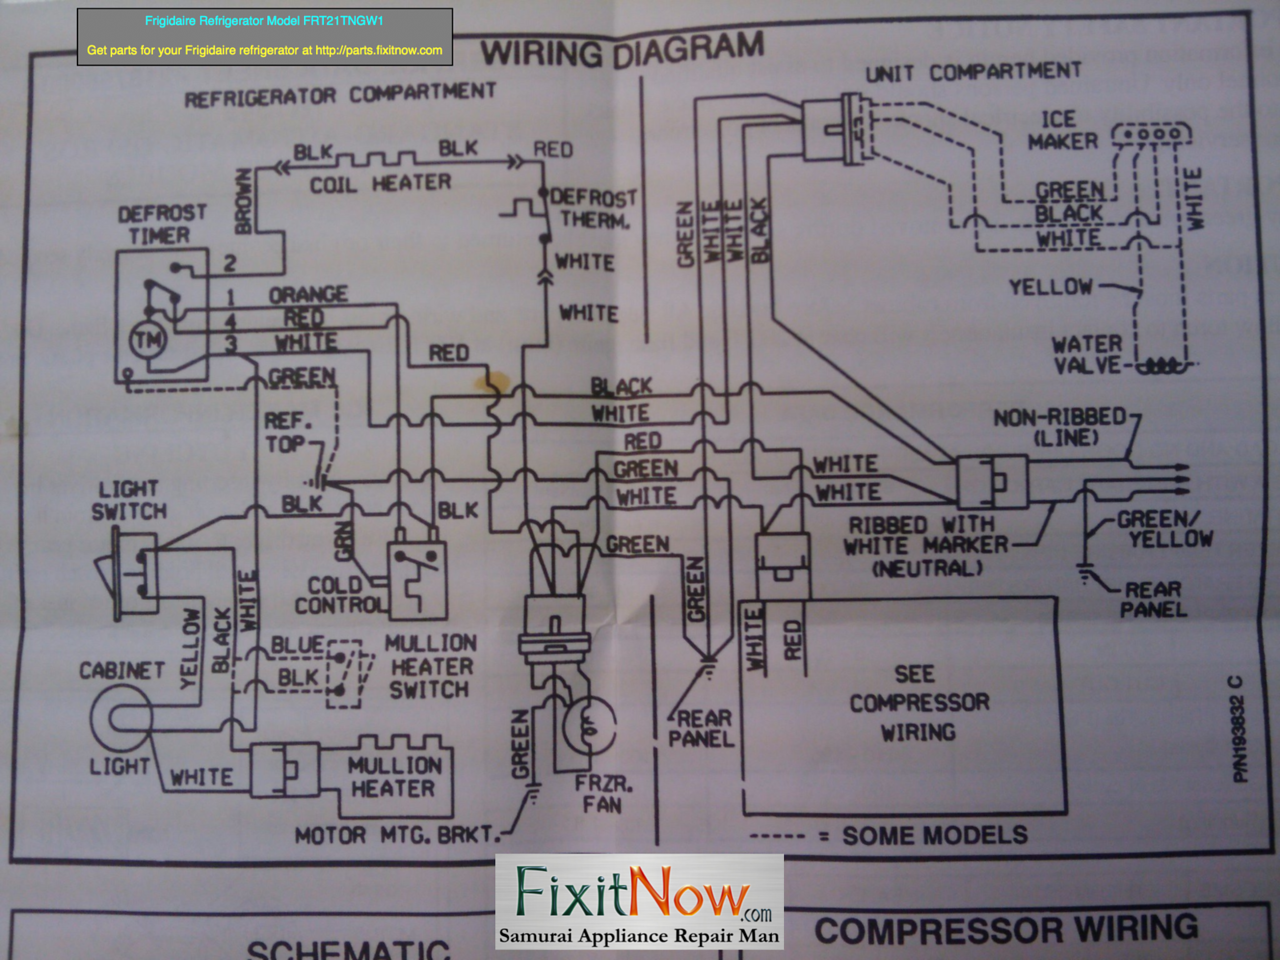 4927632513_66c123c922_o X2 appliantology photo keywords refrigerator samsung refrigerator wiring diagram at gsmx.co